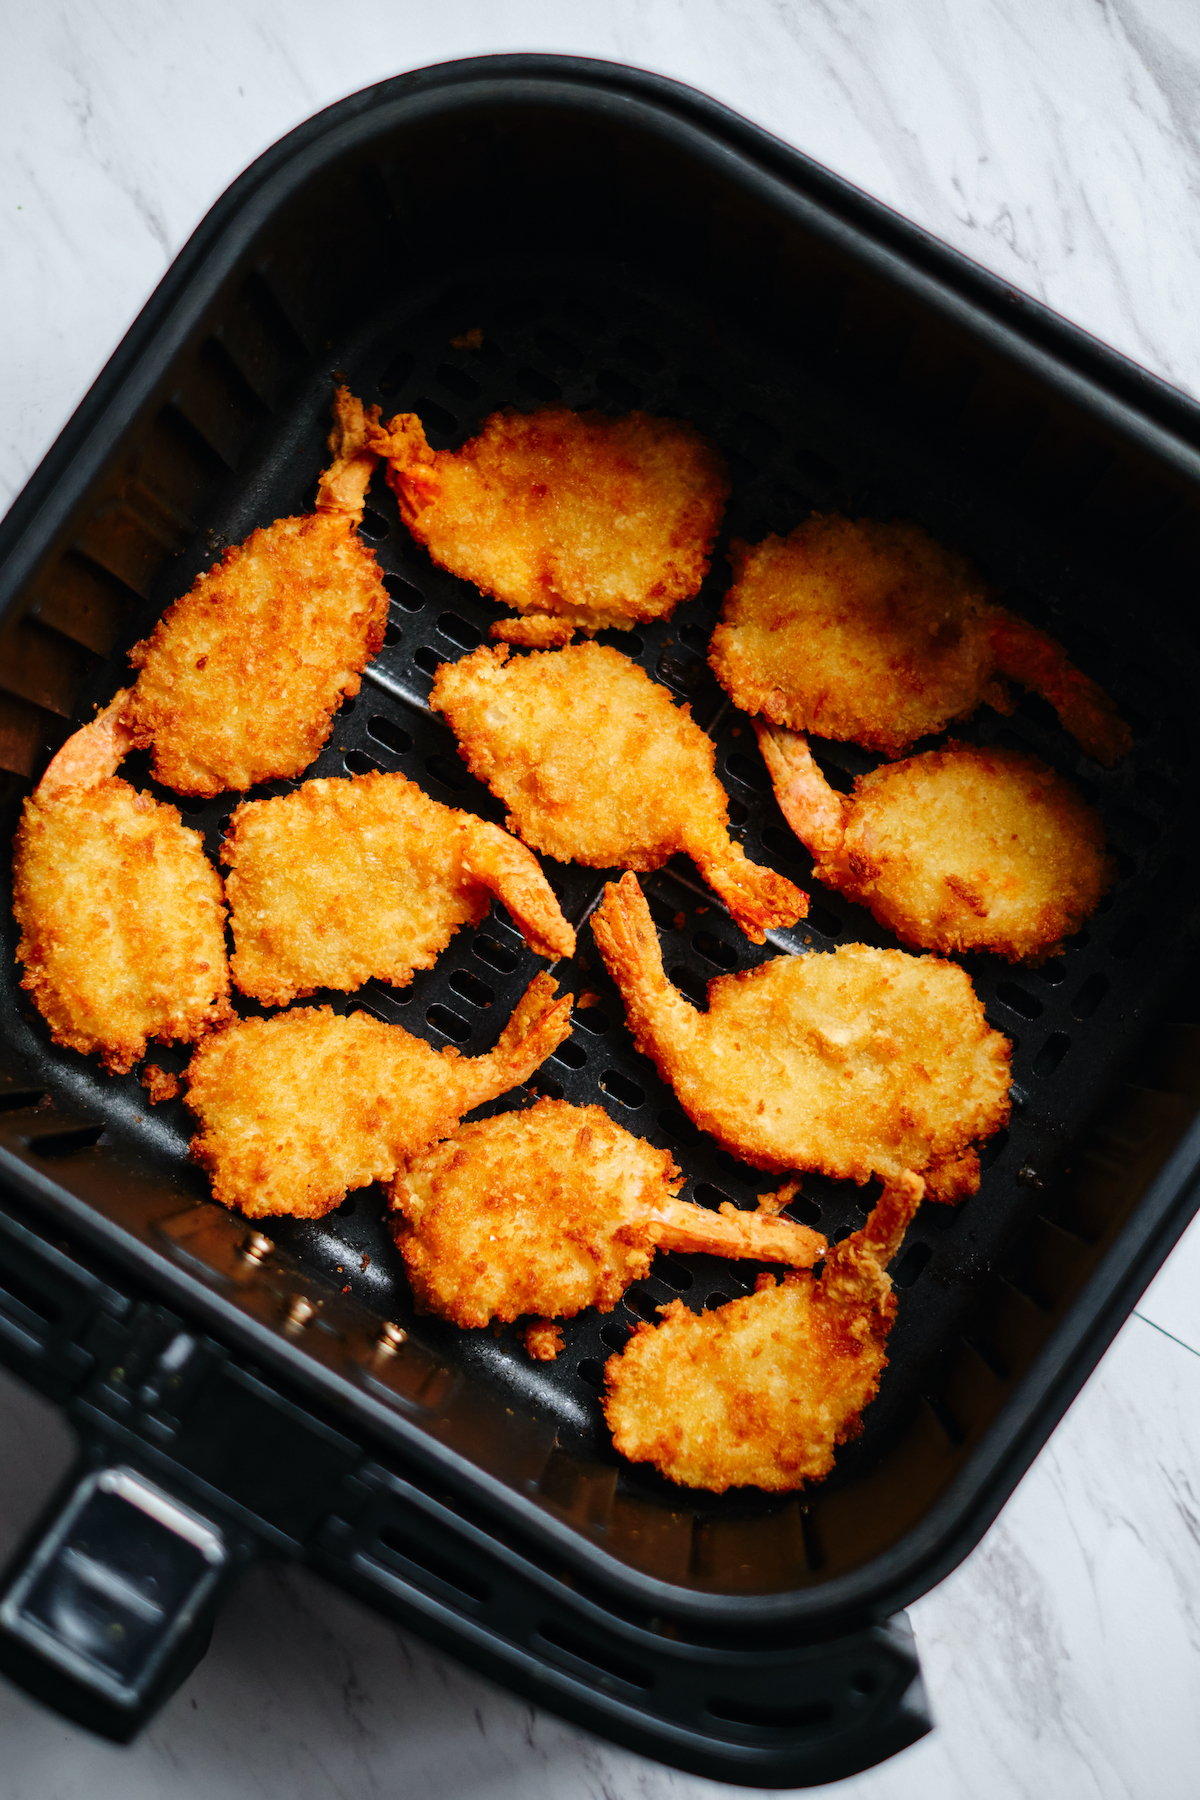 top down view of cooked frozen shrimp in the air fryer basket